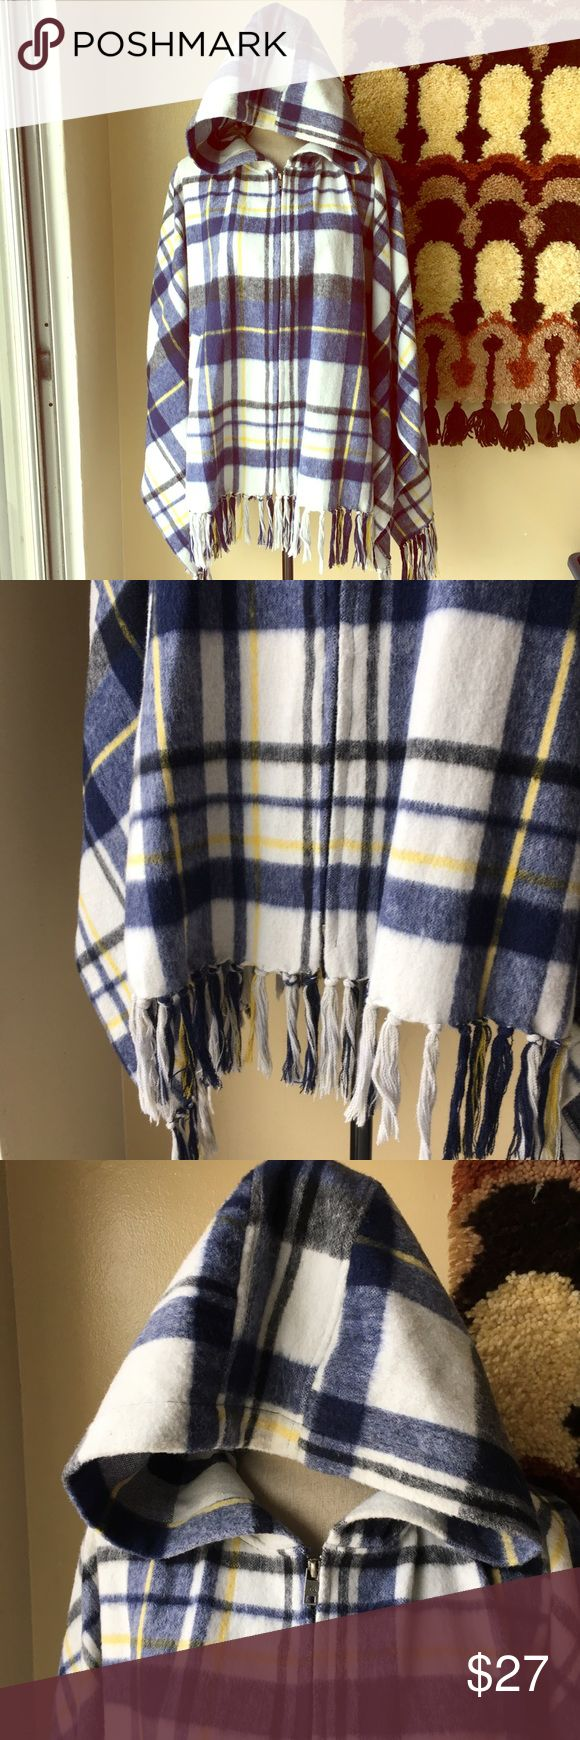 Quicksilver new women's wool poncho zipper blue Quicksilver wool poly poncho. Blue white yellow plaid. Wore this once. One size. With pockets!!! Oversized hood. Super soft. Really rad piece. Fringe at bottom. Zippers up length of front. #poncho #plaid #quicksilver #hoodie #oversized quicksilver Jackets & Coats Capes